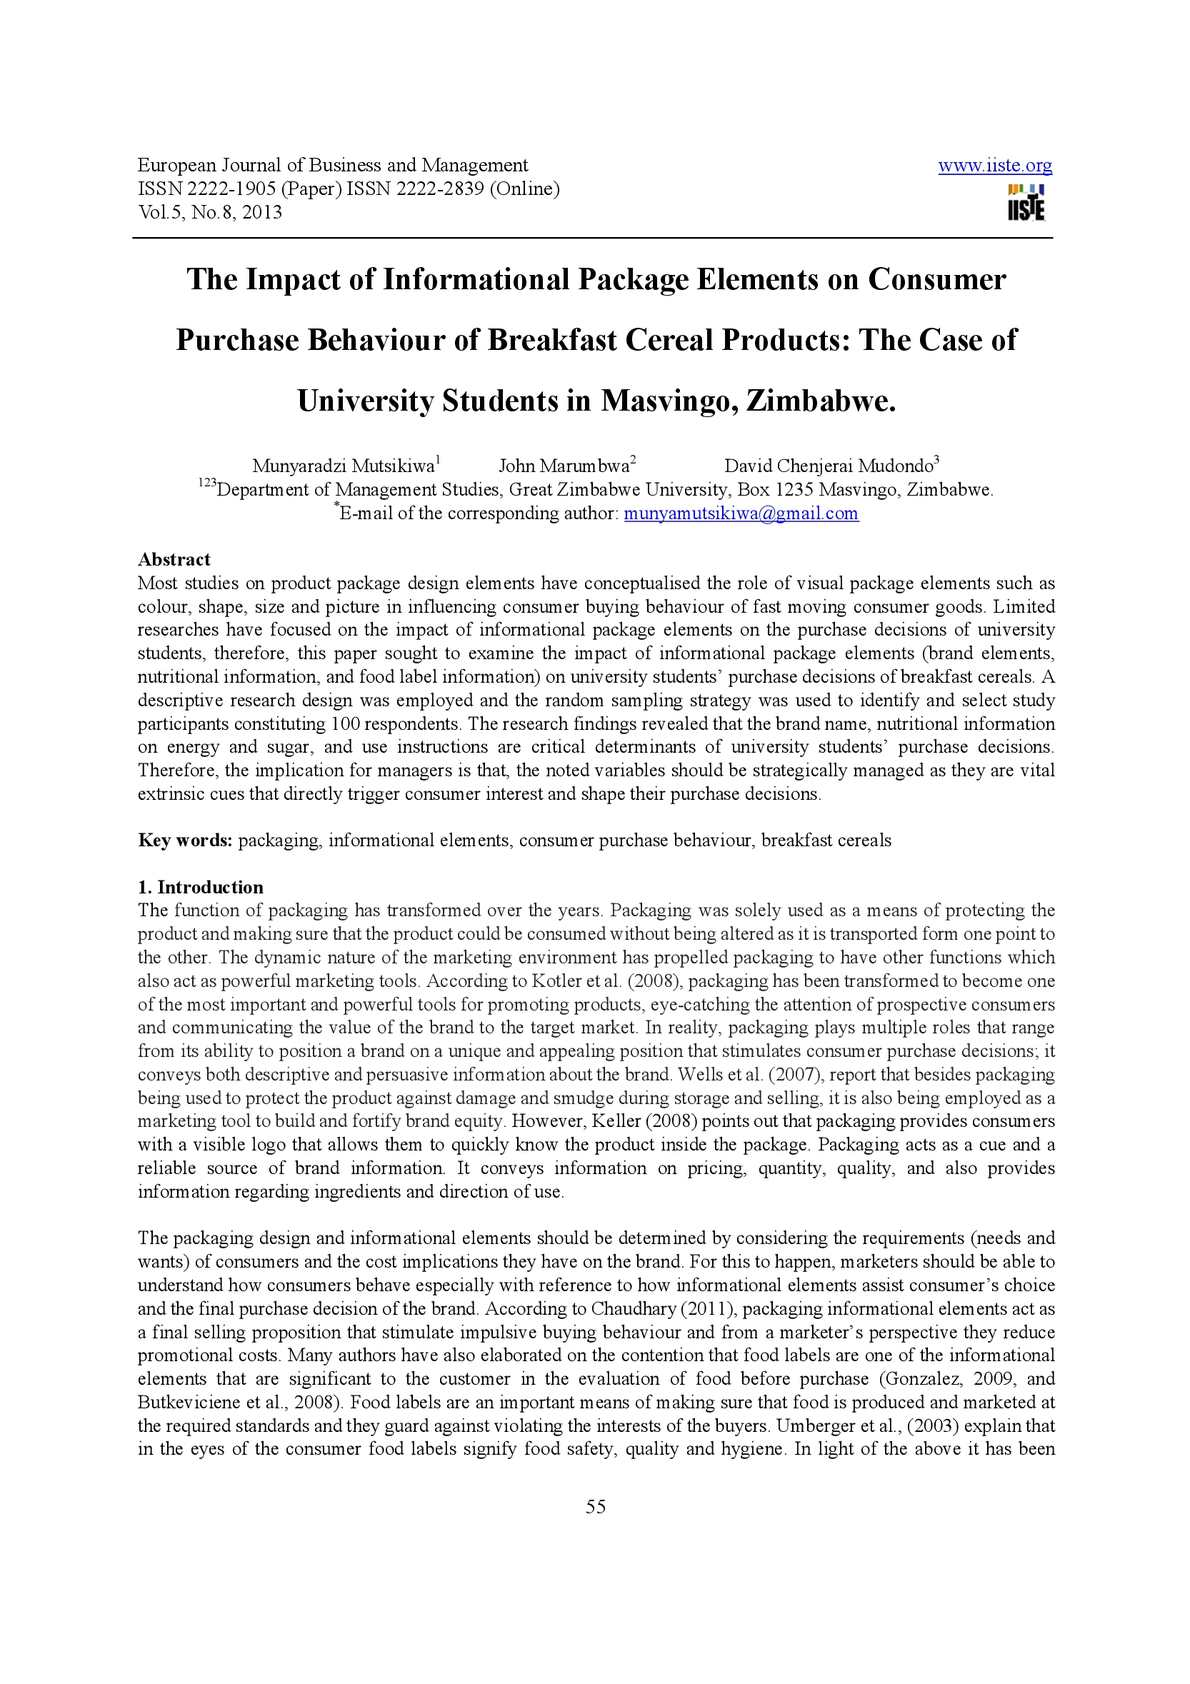 Calaméo - The Impact of Informational Package Elements on